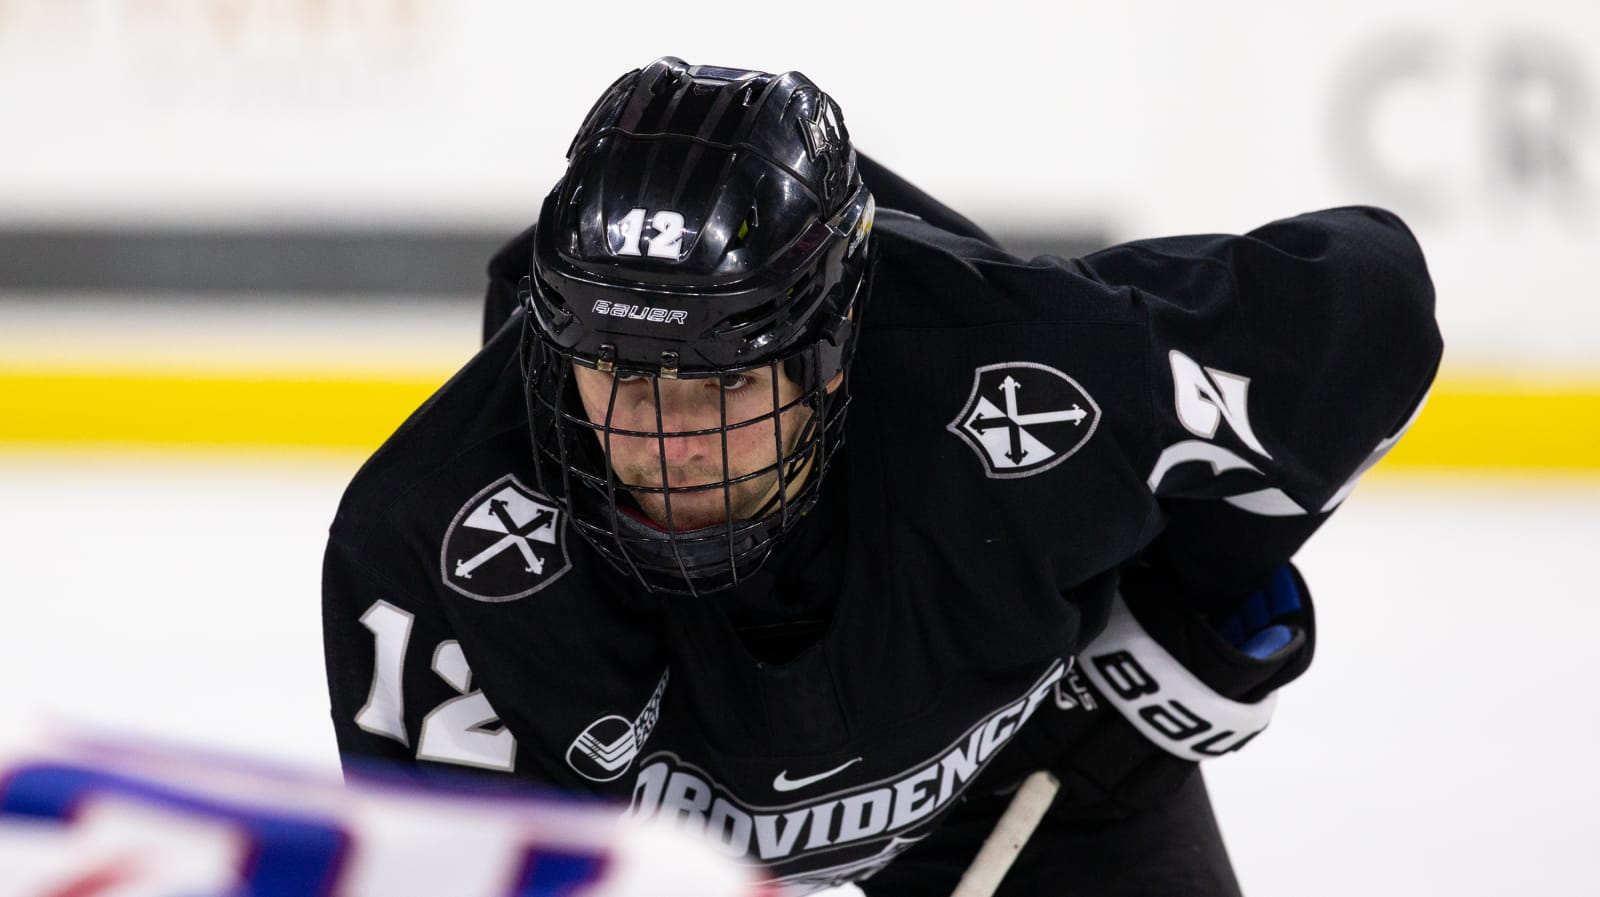 Jack Dugan #12 of the Providence College Friars.